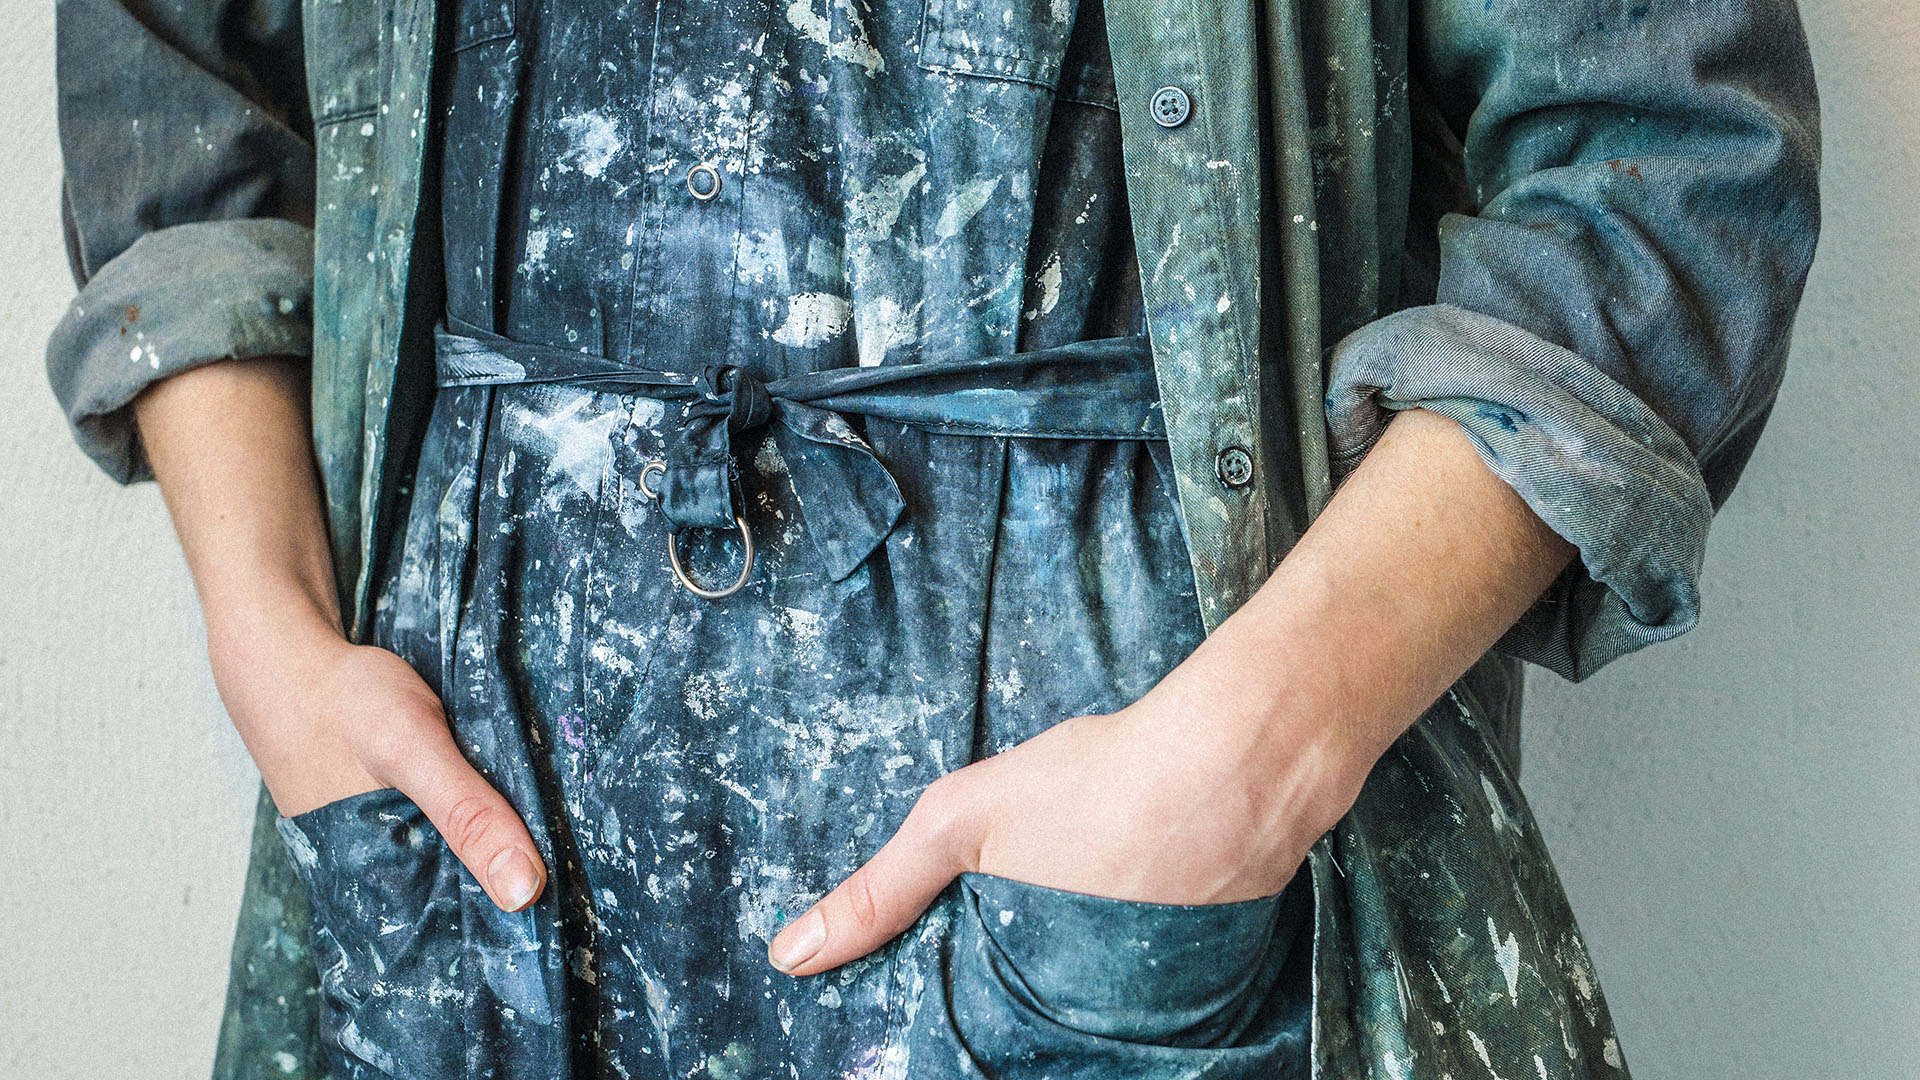 Close up of hands in the pockets of an apron splattered with paint.